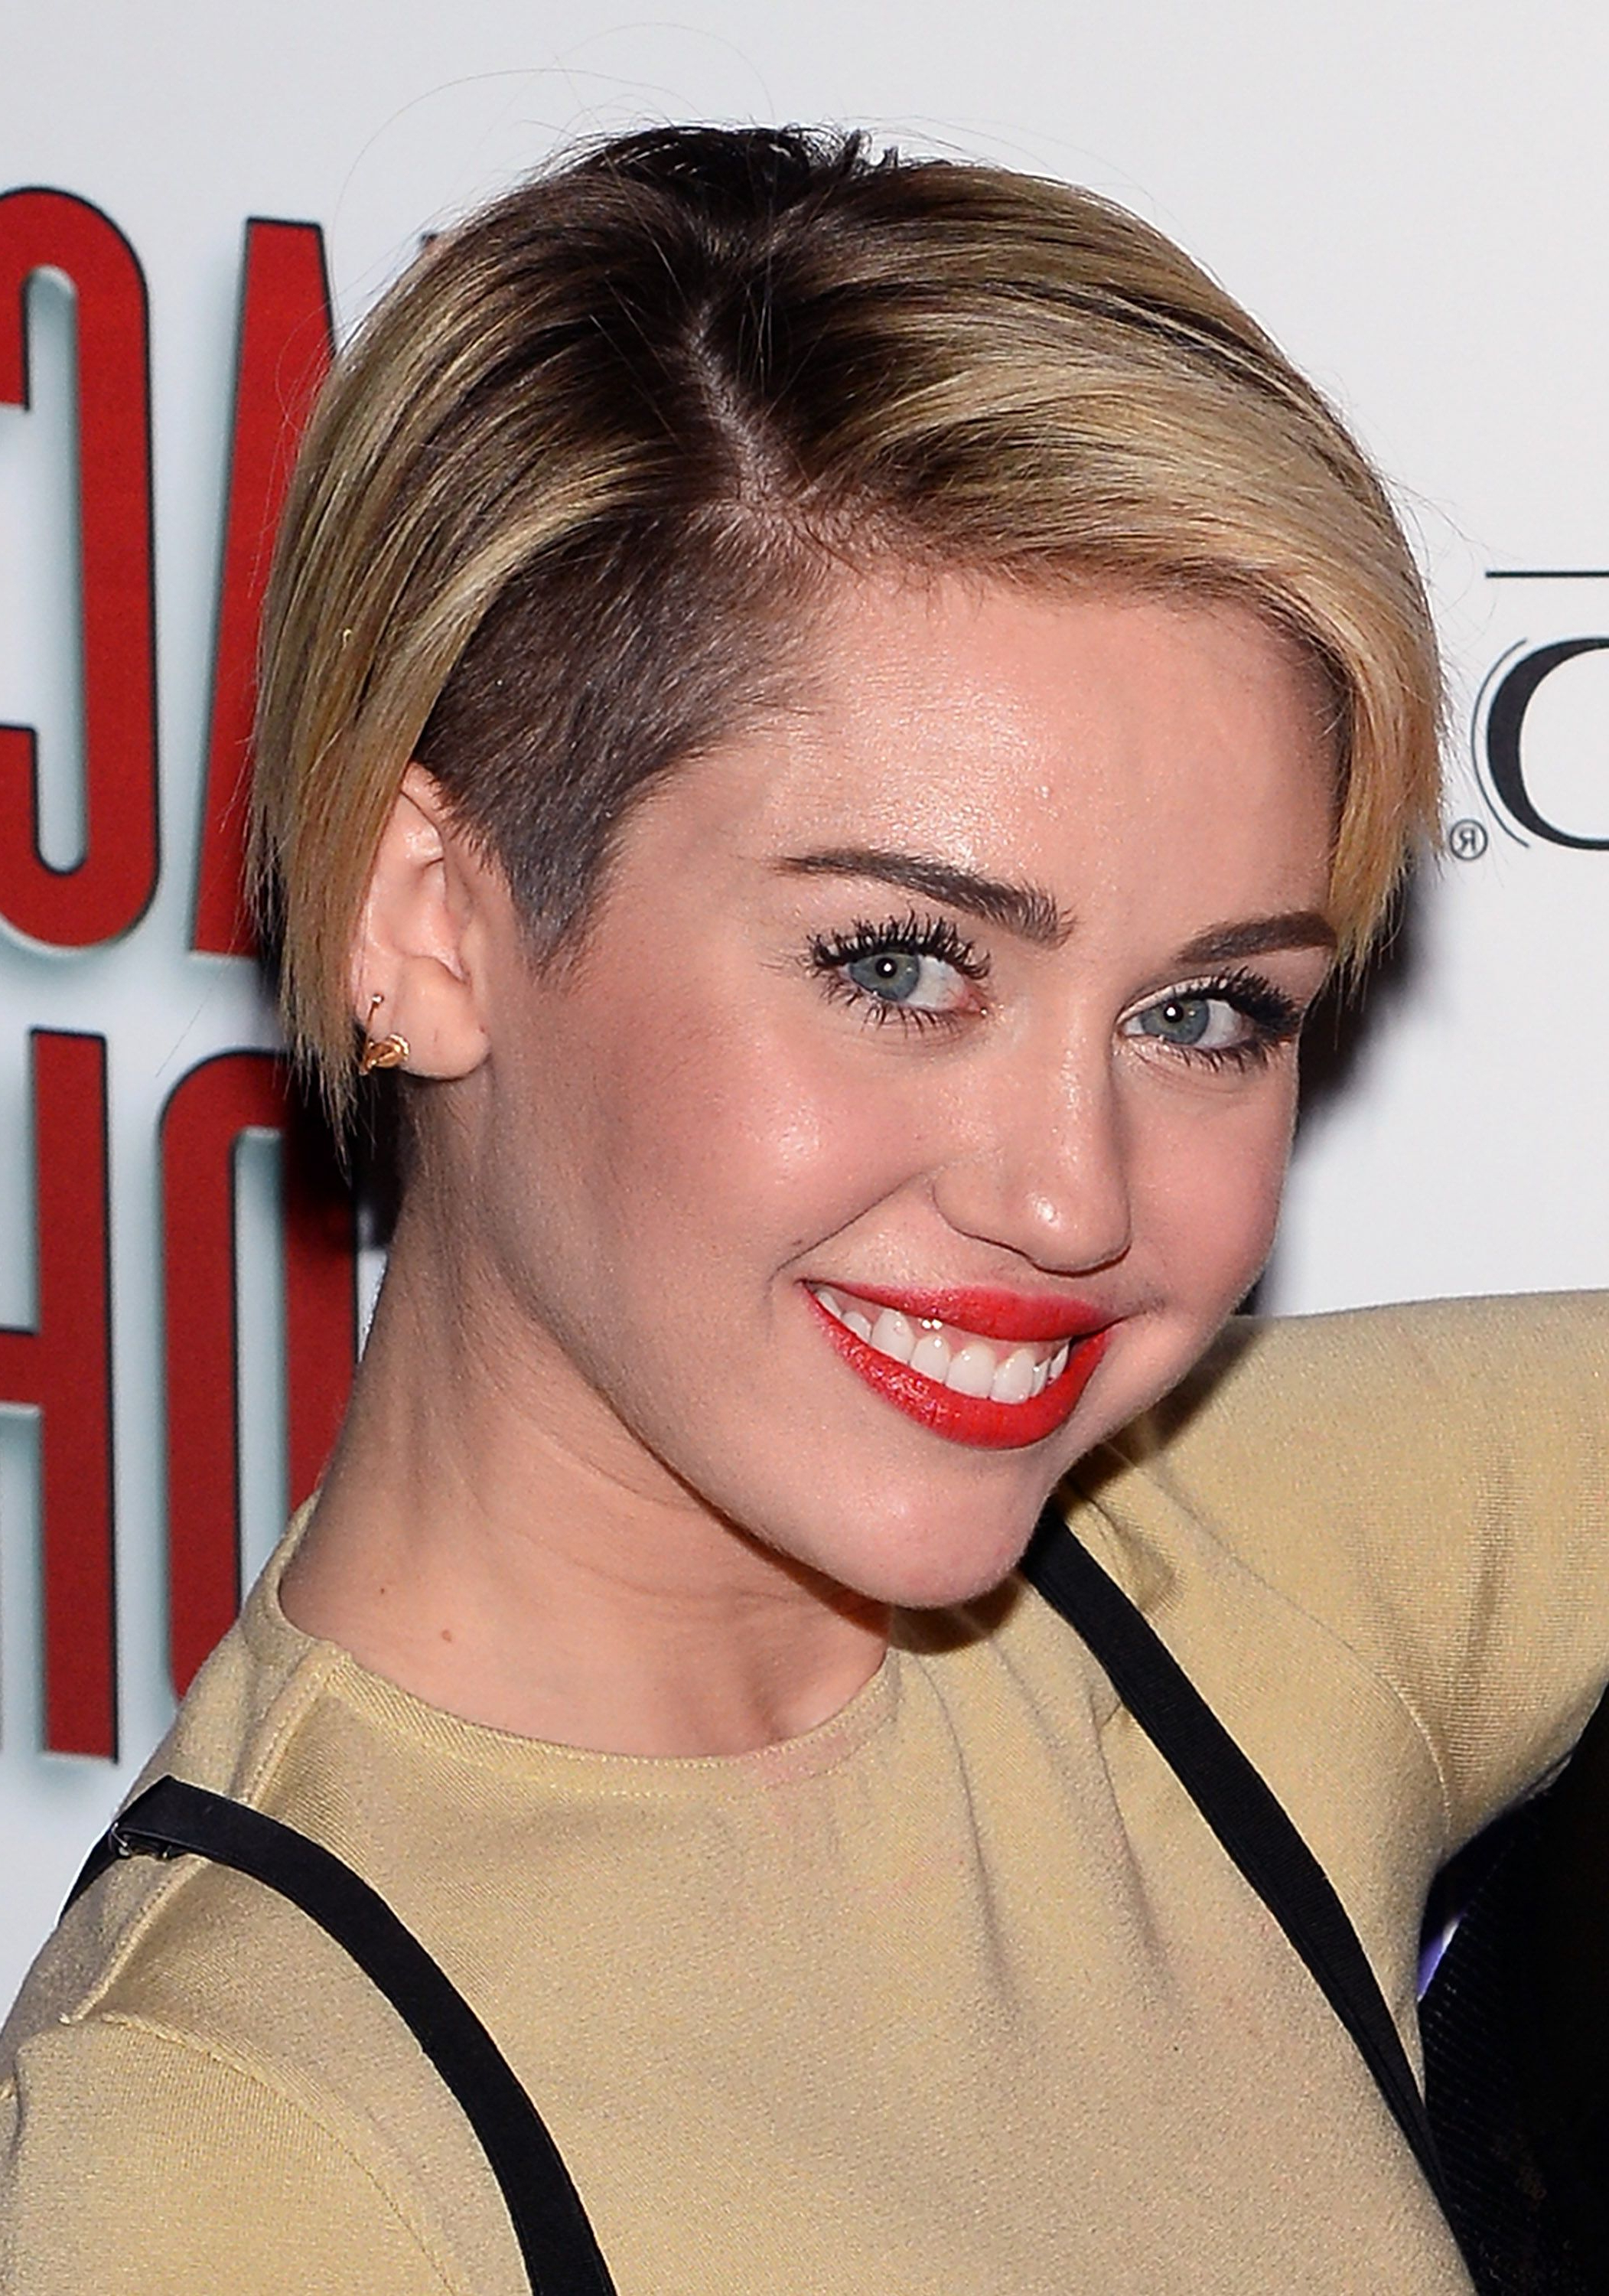 Miley Cyrus Shows Us How To Really Grow Out A Pixie | Cut It Off Inside Miley Cyrus Short Hairstyles (View 2 of 25)